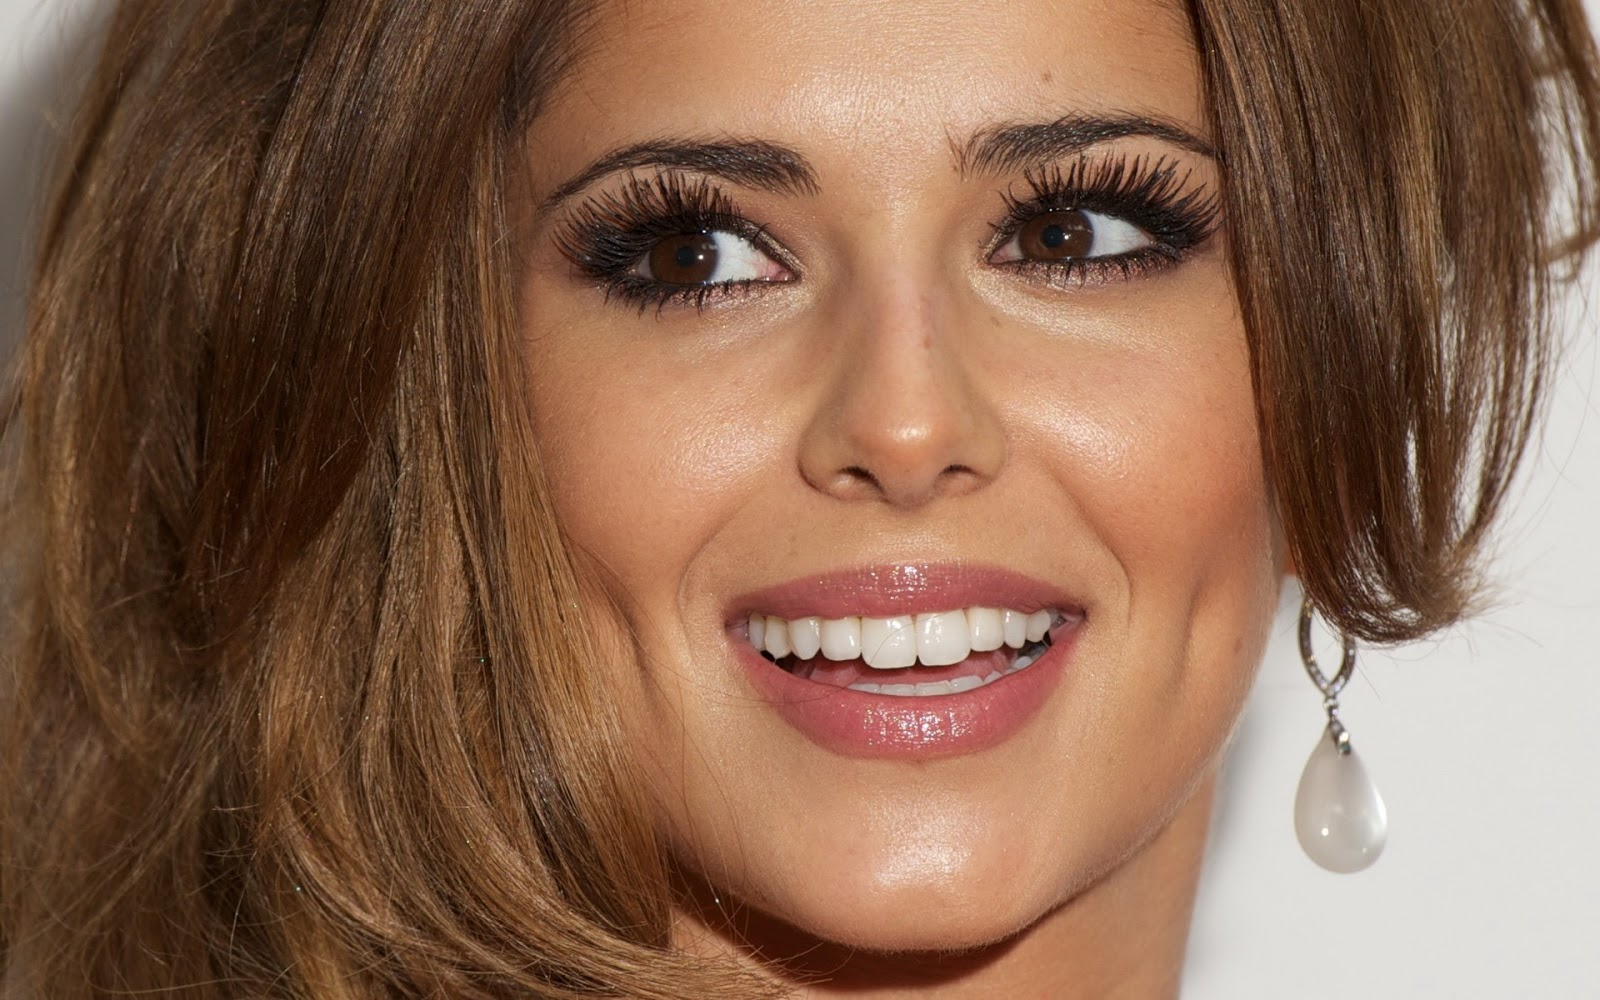 With celebrities perfect teeth images